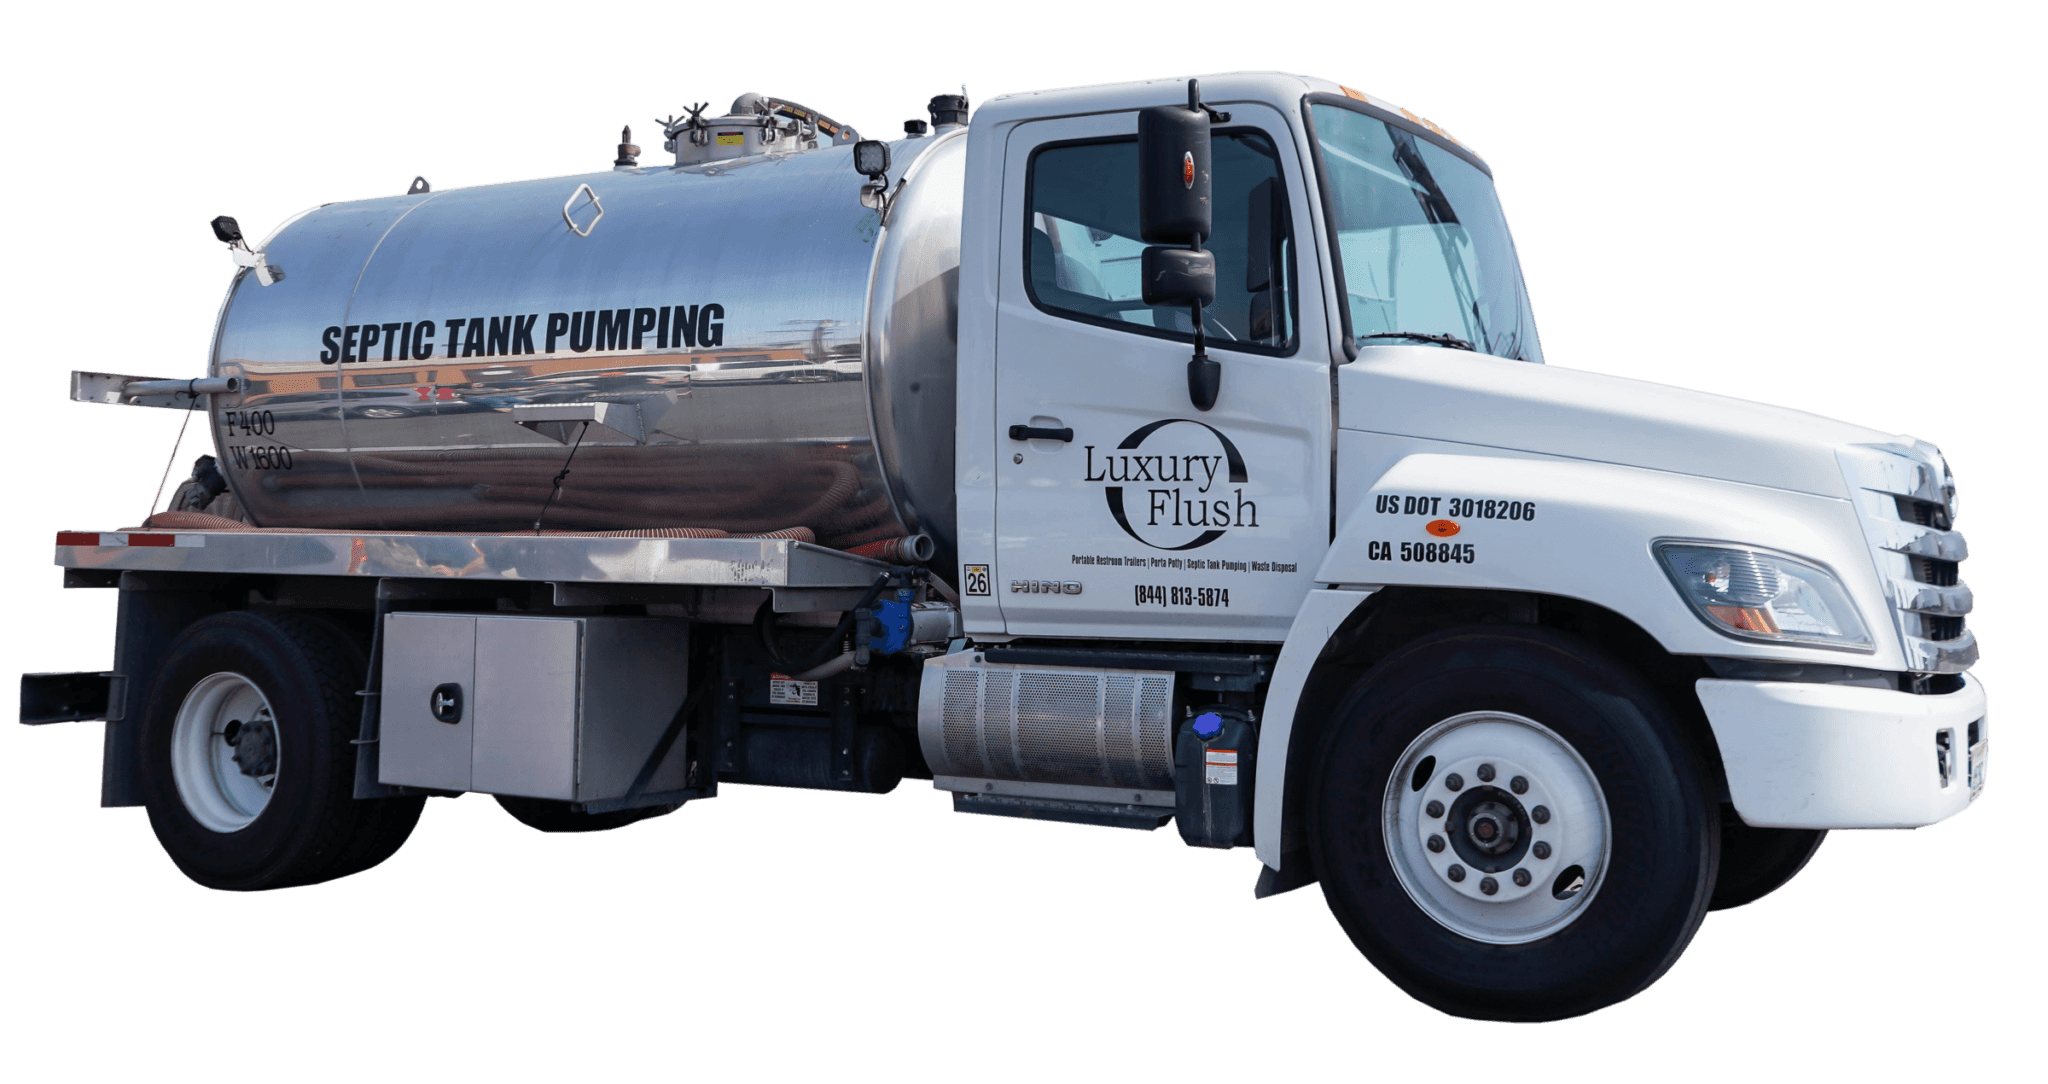 Septic Tank Pumping, RV septic pumping, grease trap pumping